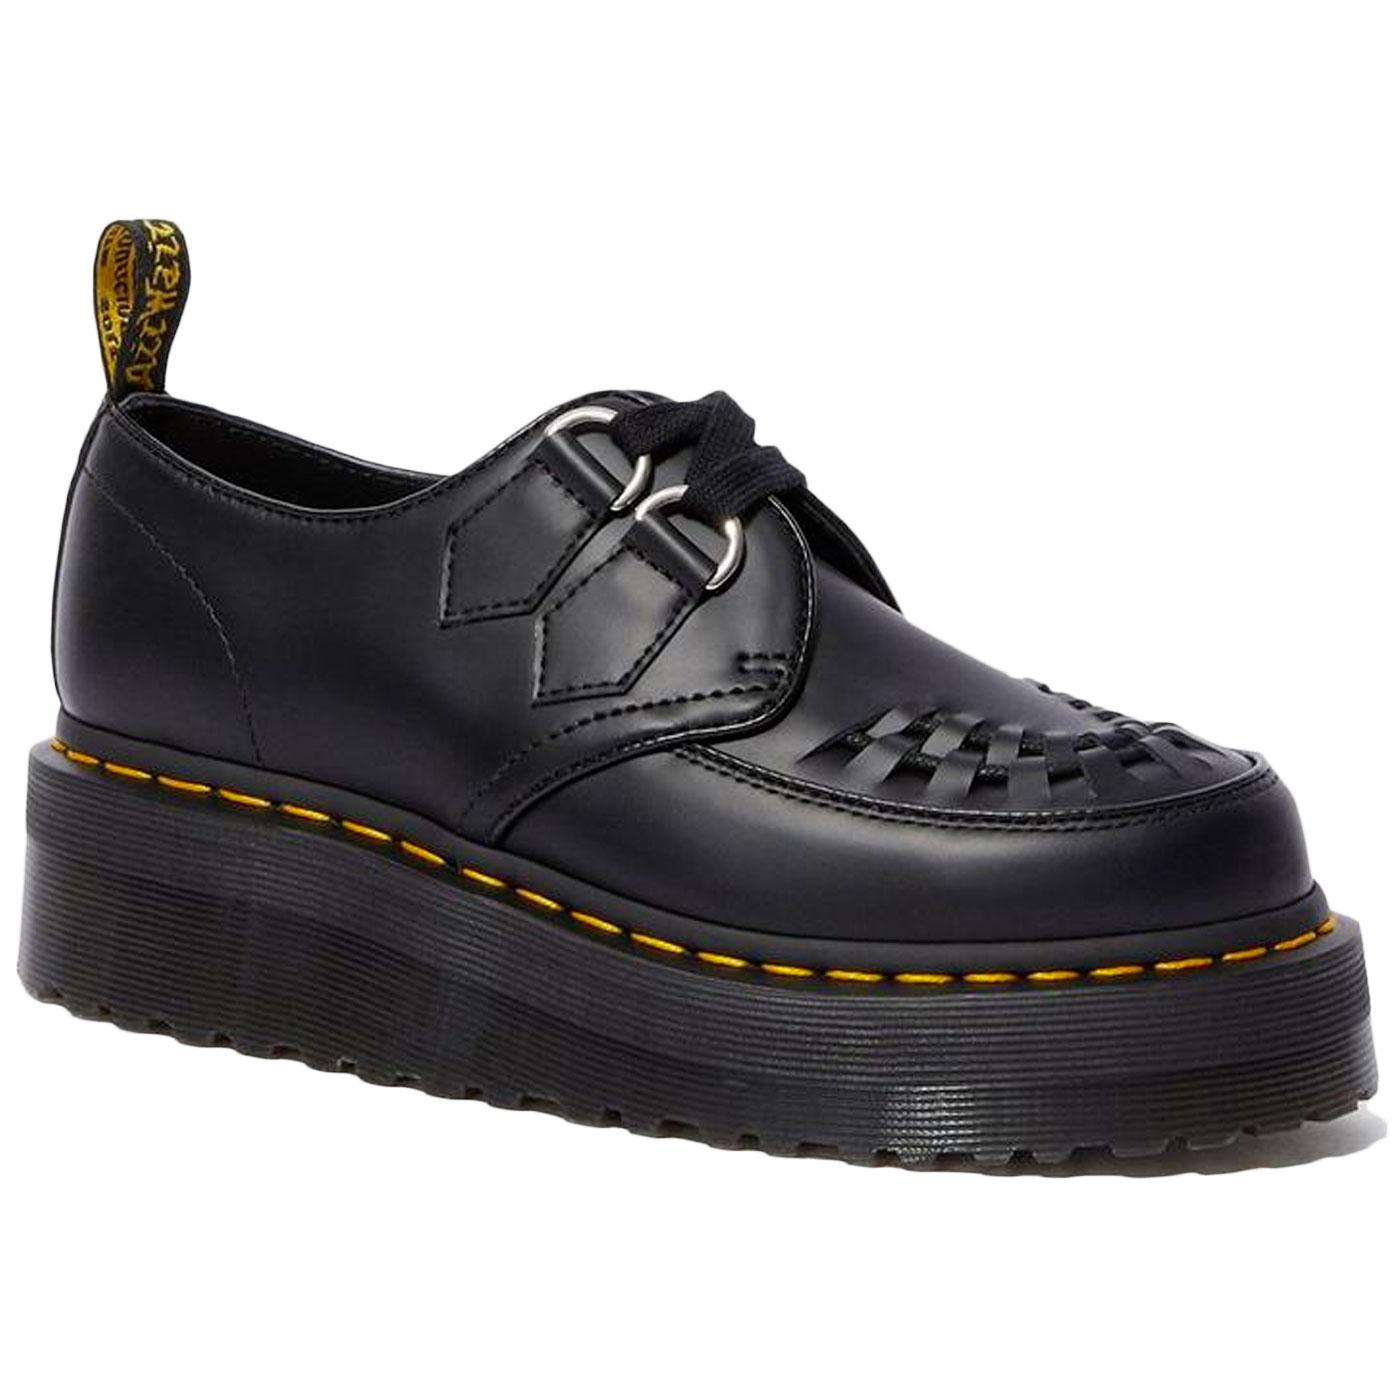 Sidney DR MARTENS Men's Retro Smooth Creepers B